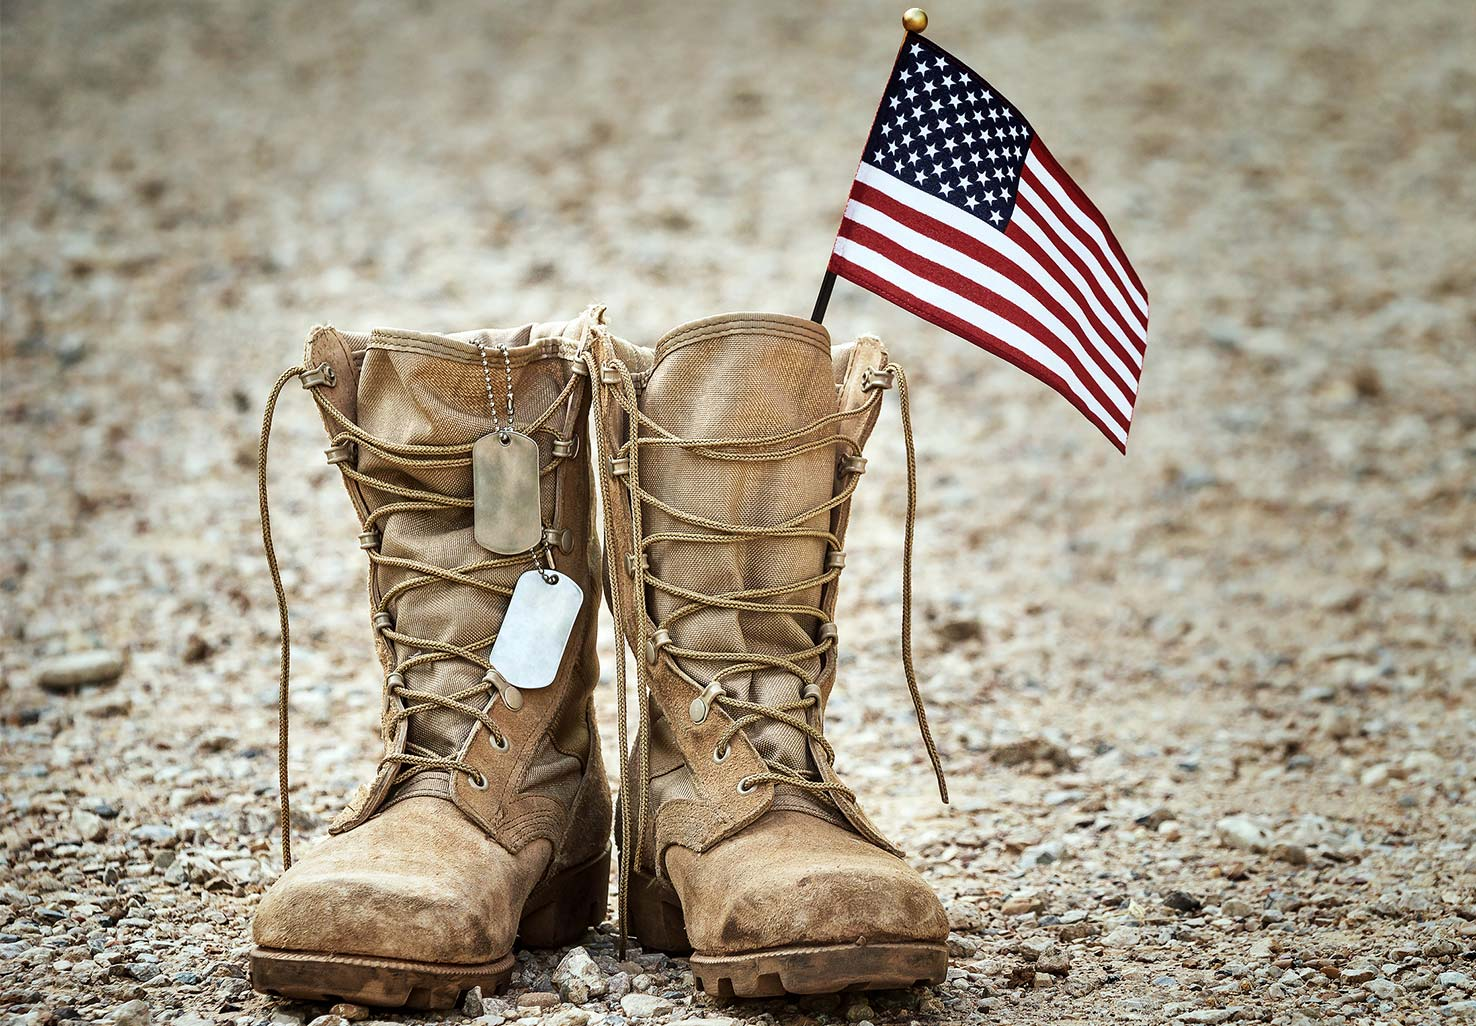 Pair of army boots with a small American flag